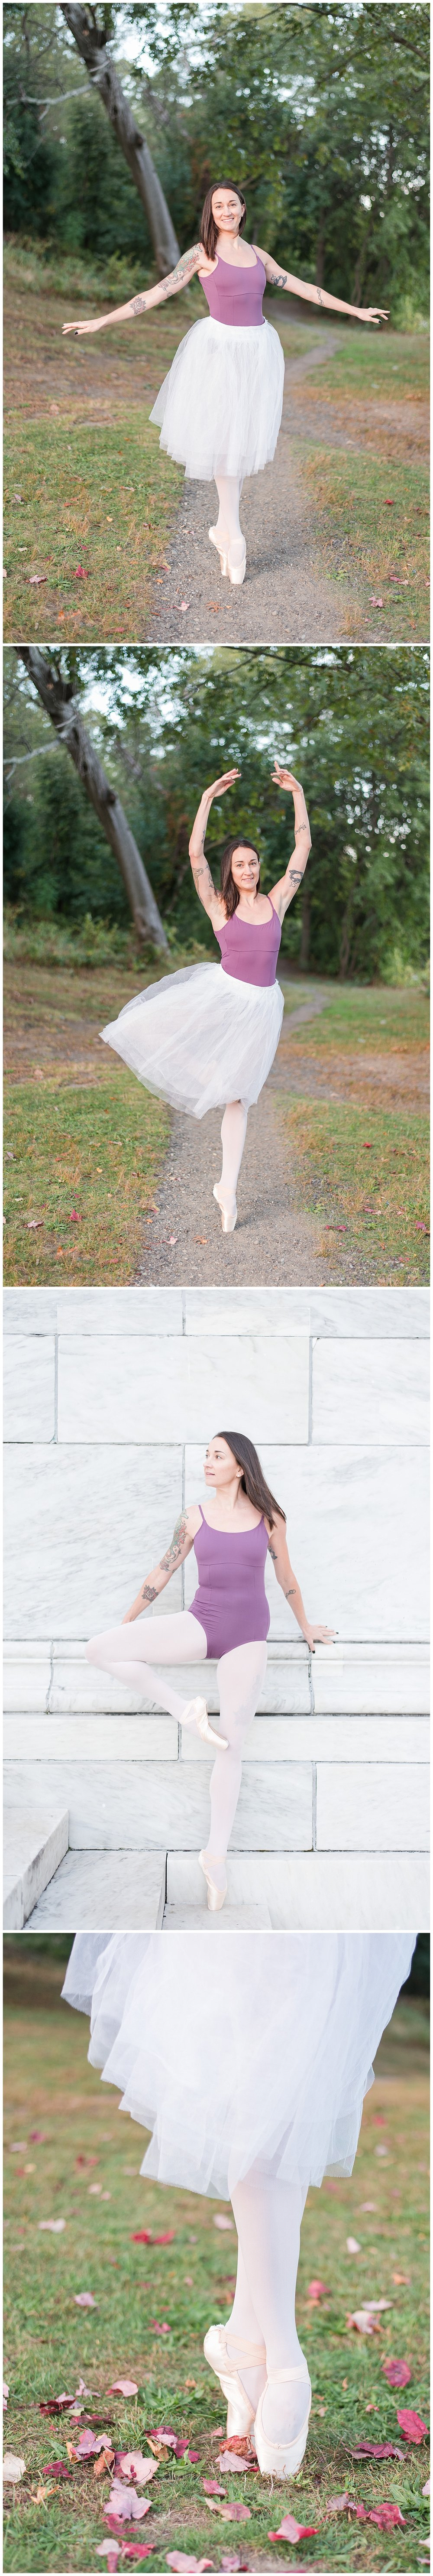 Rhode Island Dance Photographer